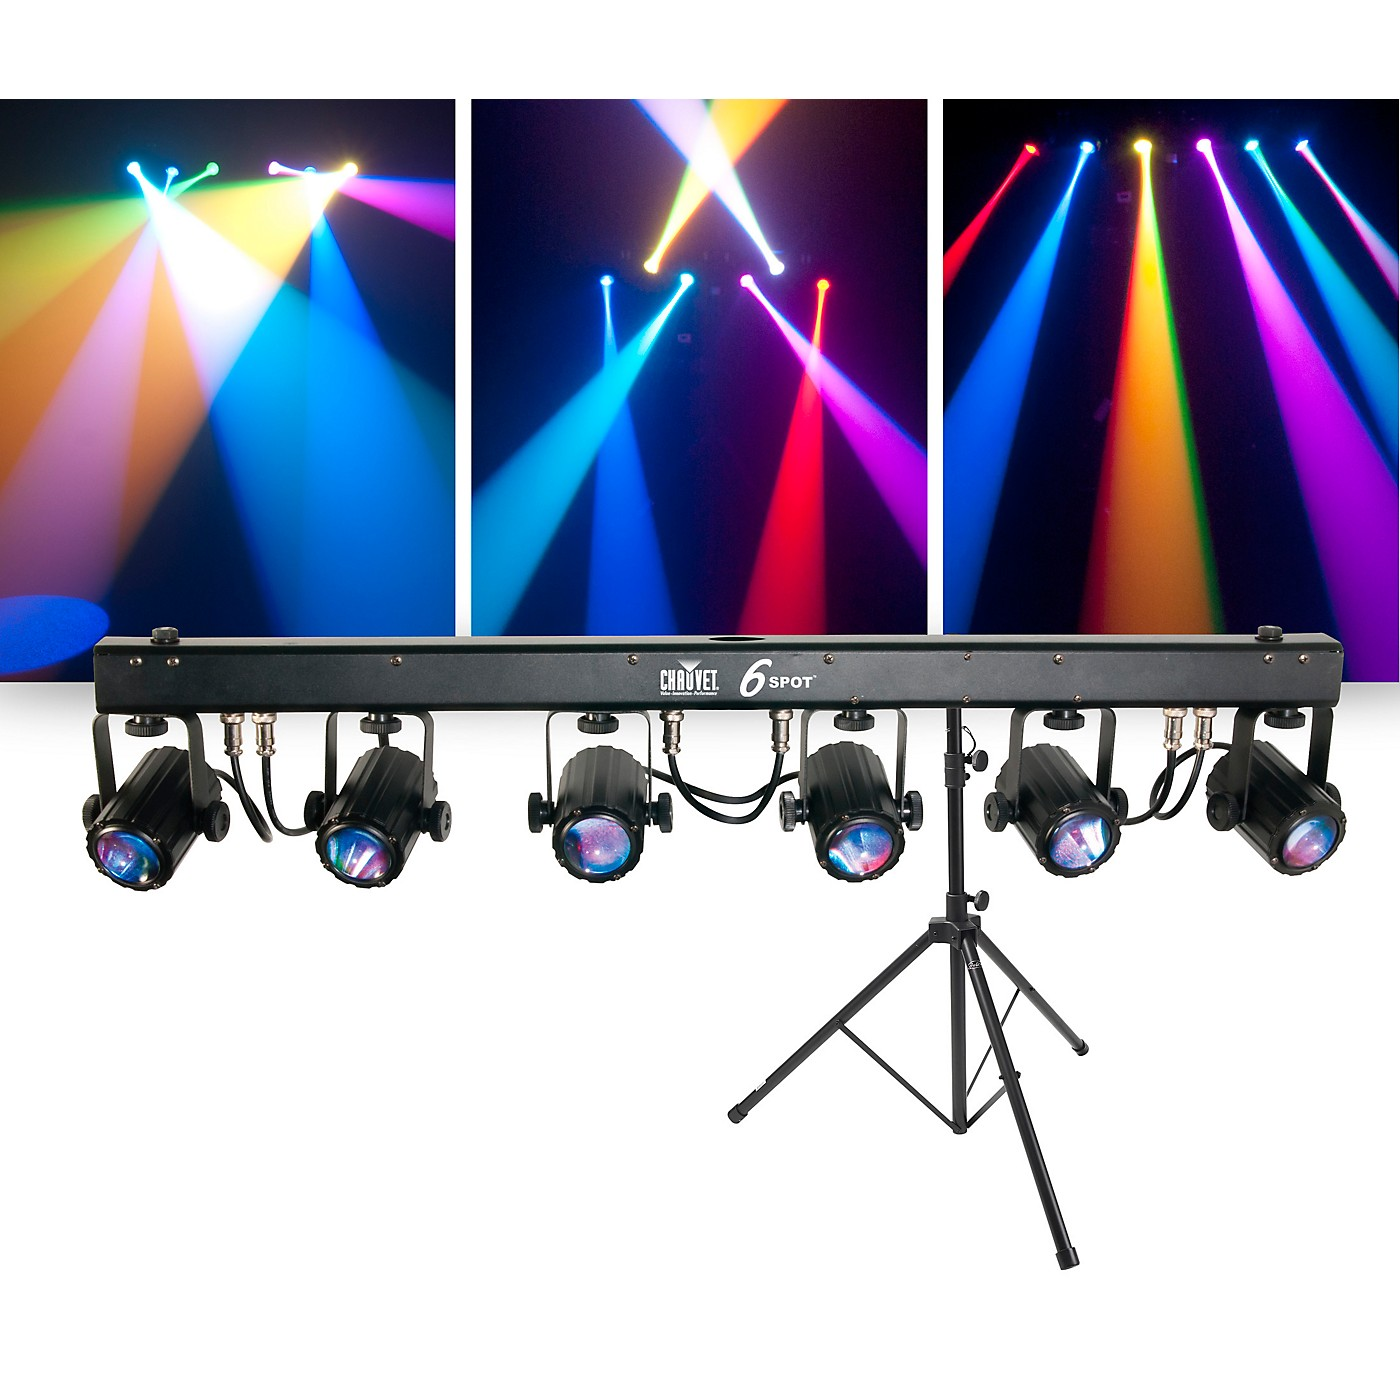 CHAUVET DJ Package with 6SPOT RGB LED Beam Lighting System and Stand thumbnail